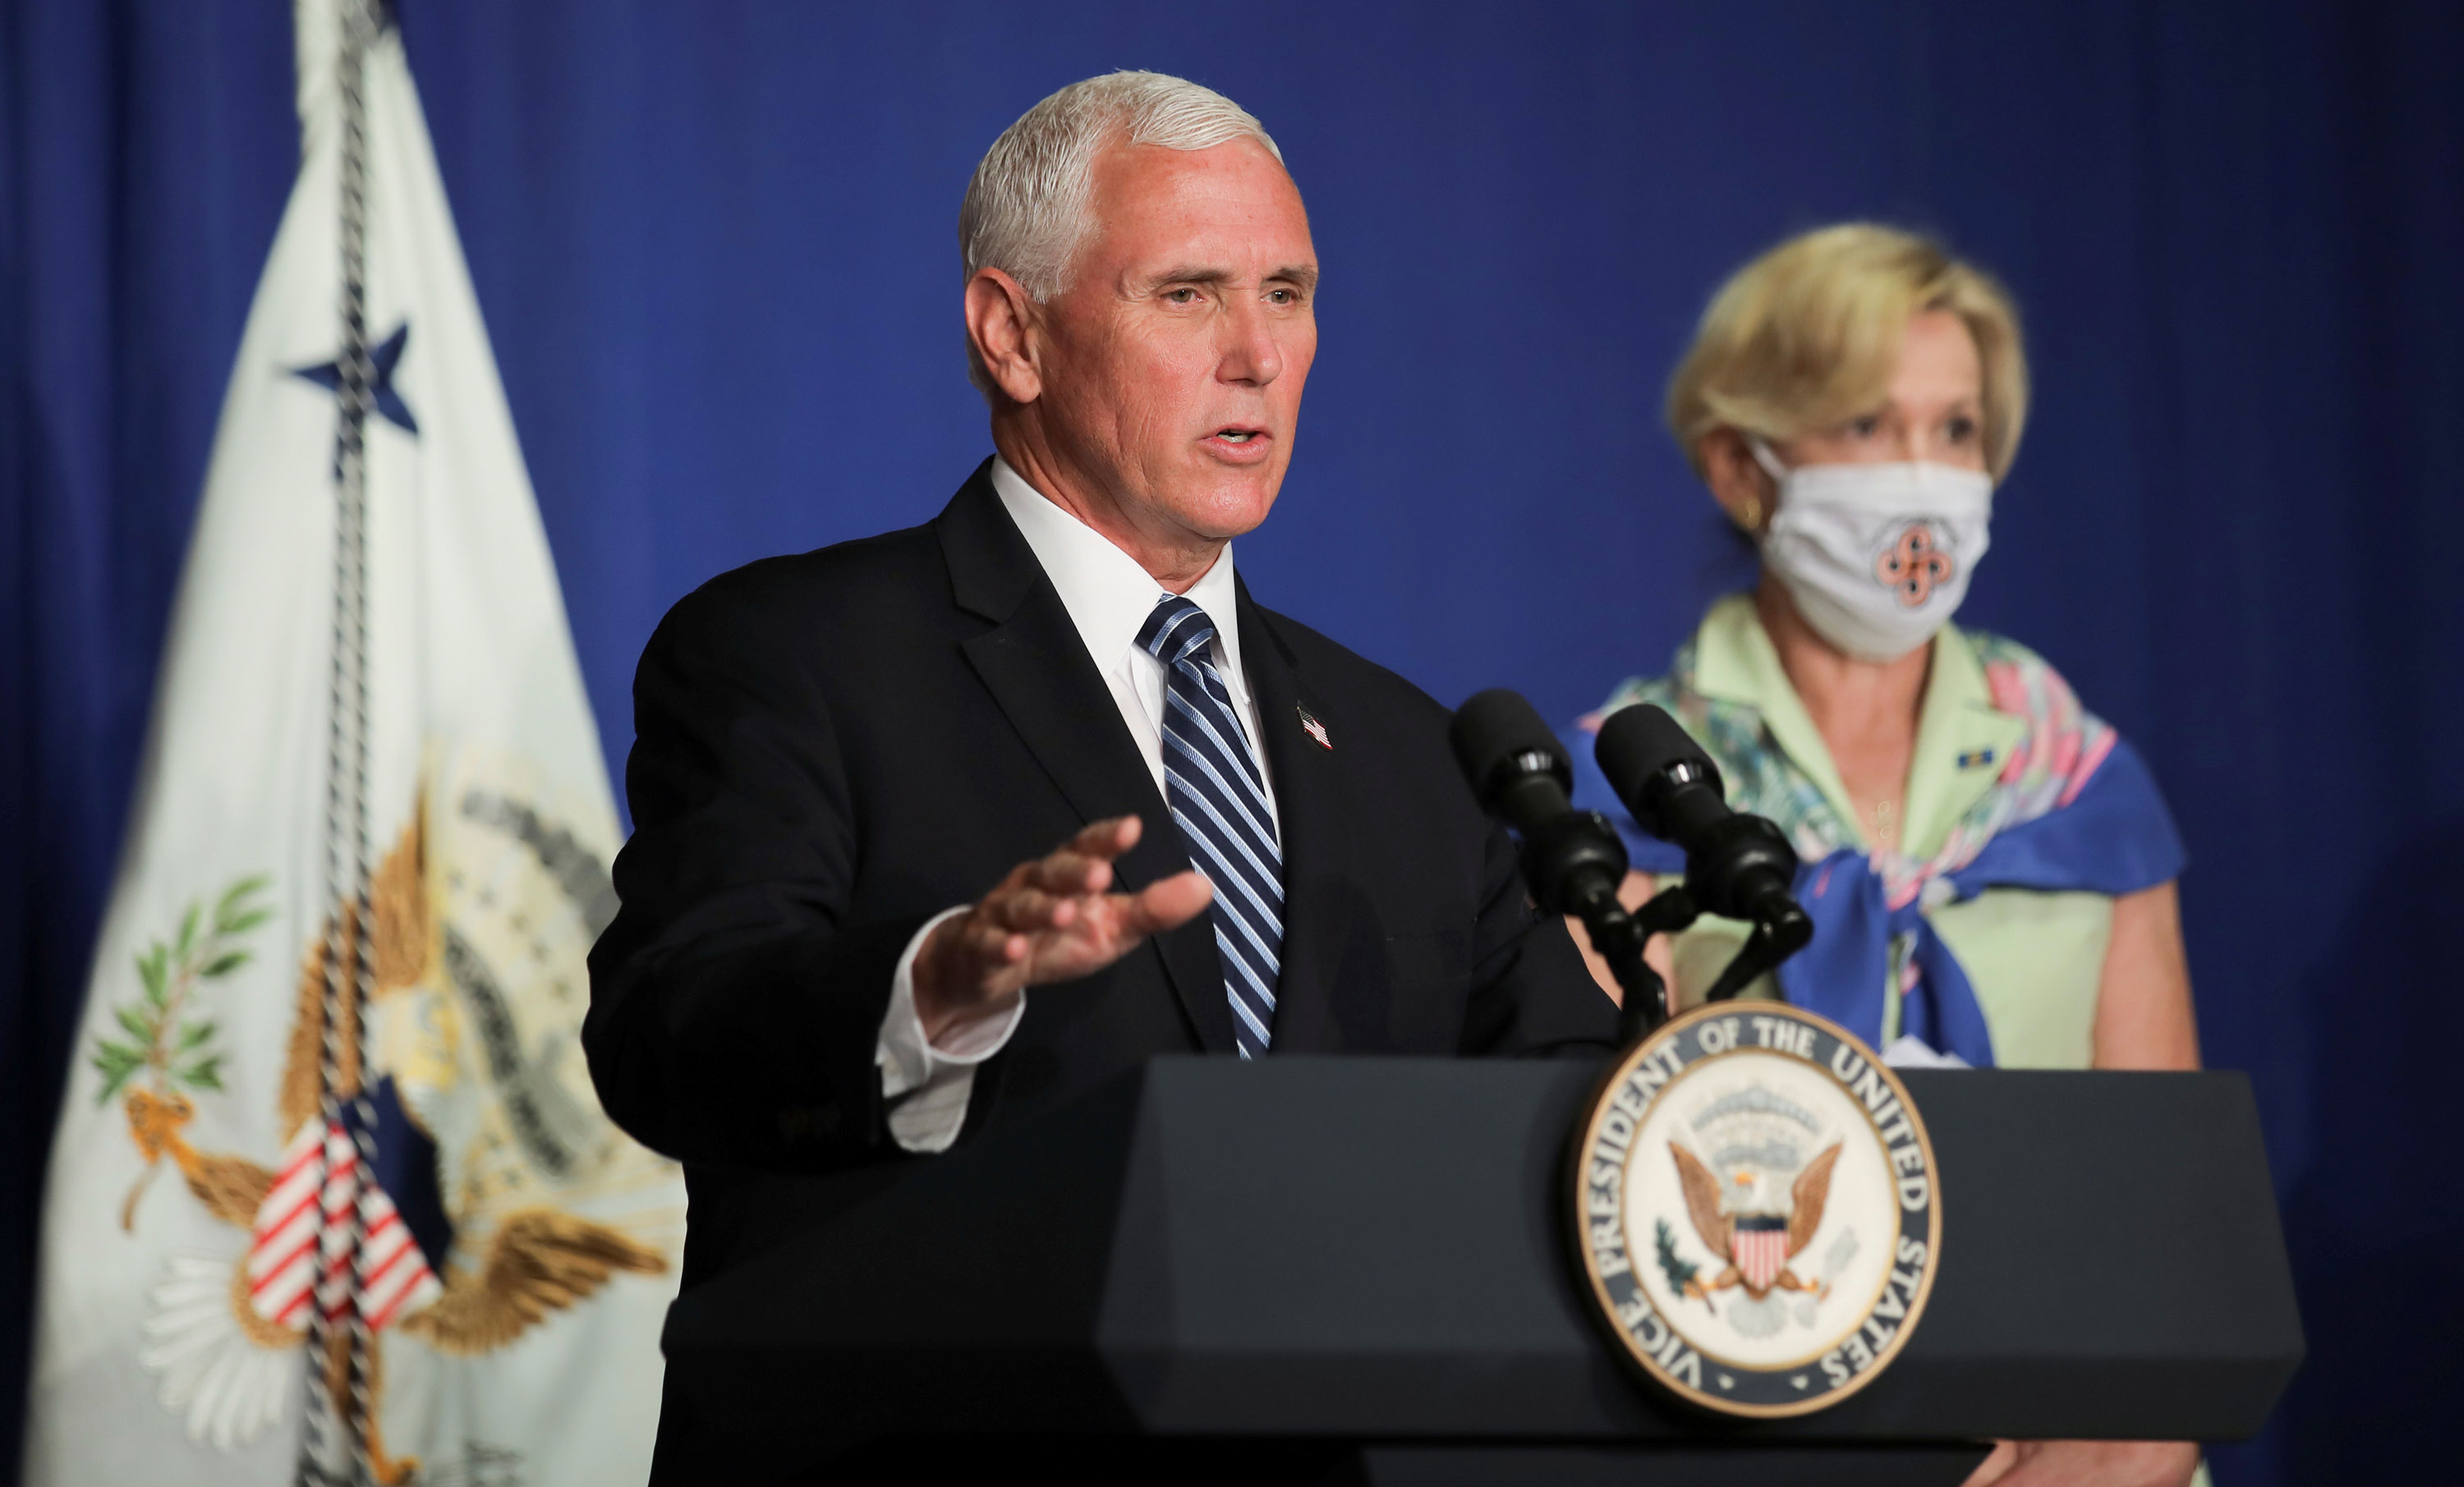 Vice President Mike Pence leads a White House coronavirus disease task force briefing at the U.S. Education Department in Washington, DC., on July 8.